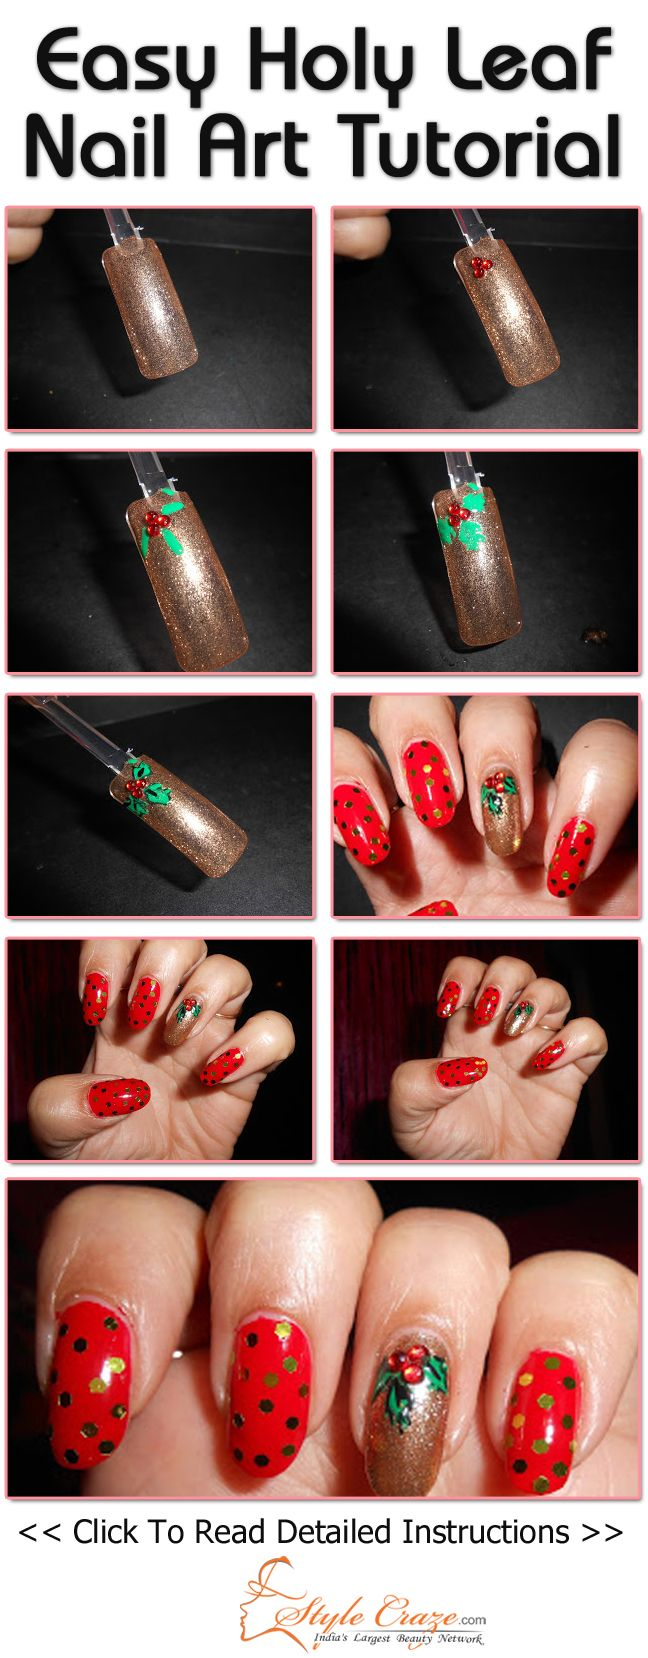 Nail Art Ideas shamrock nail art tutorial : 251 best leaf nail art gallery by nded images on Pinterest | Nail ...